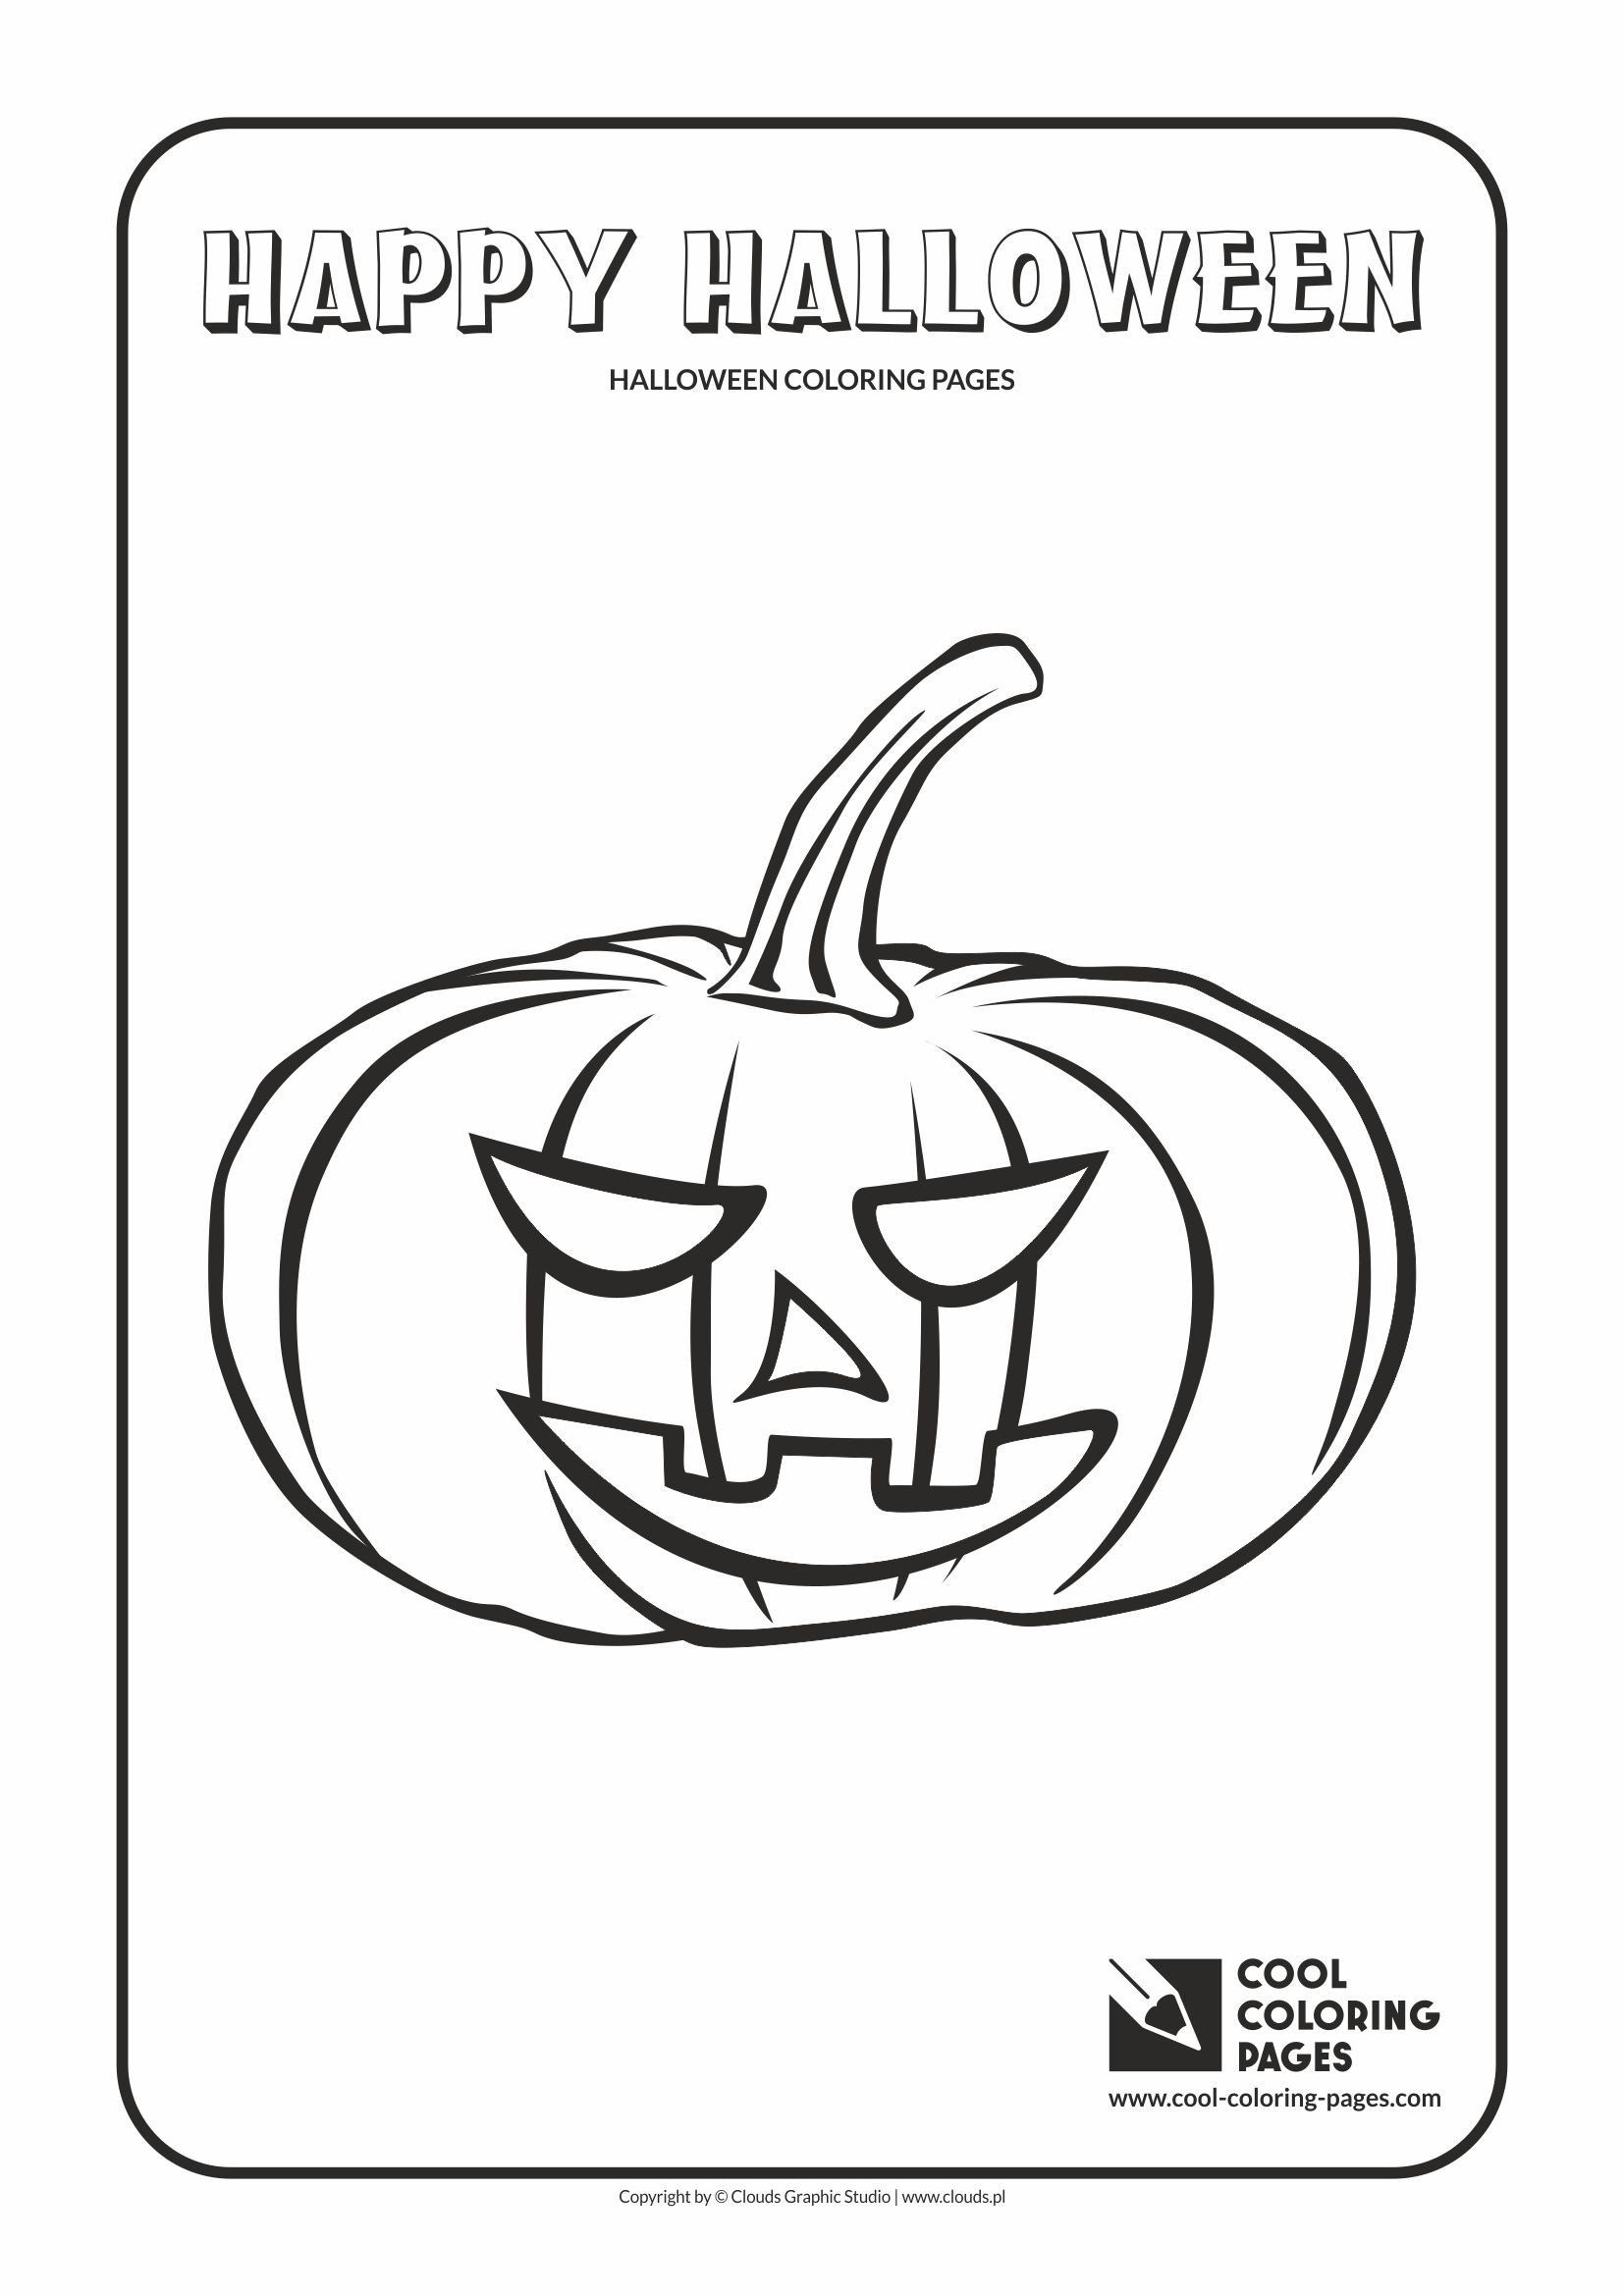 Halloween Pumpkin Coloring Pages Cool Coloring Pages Halloween Pumpkin No 1 Coloring P Kids Christmas Coloring Pages Cool Coloring Pages Pumpkin Coloring Pages